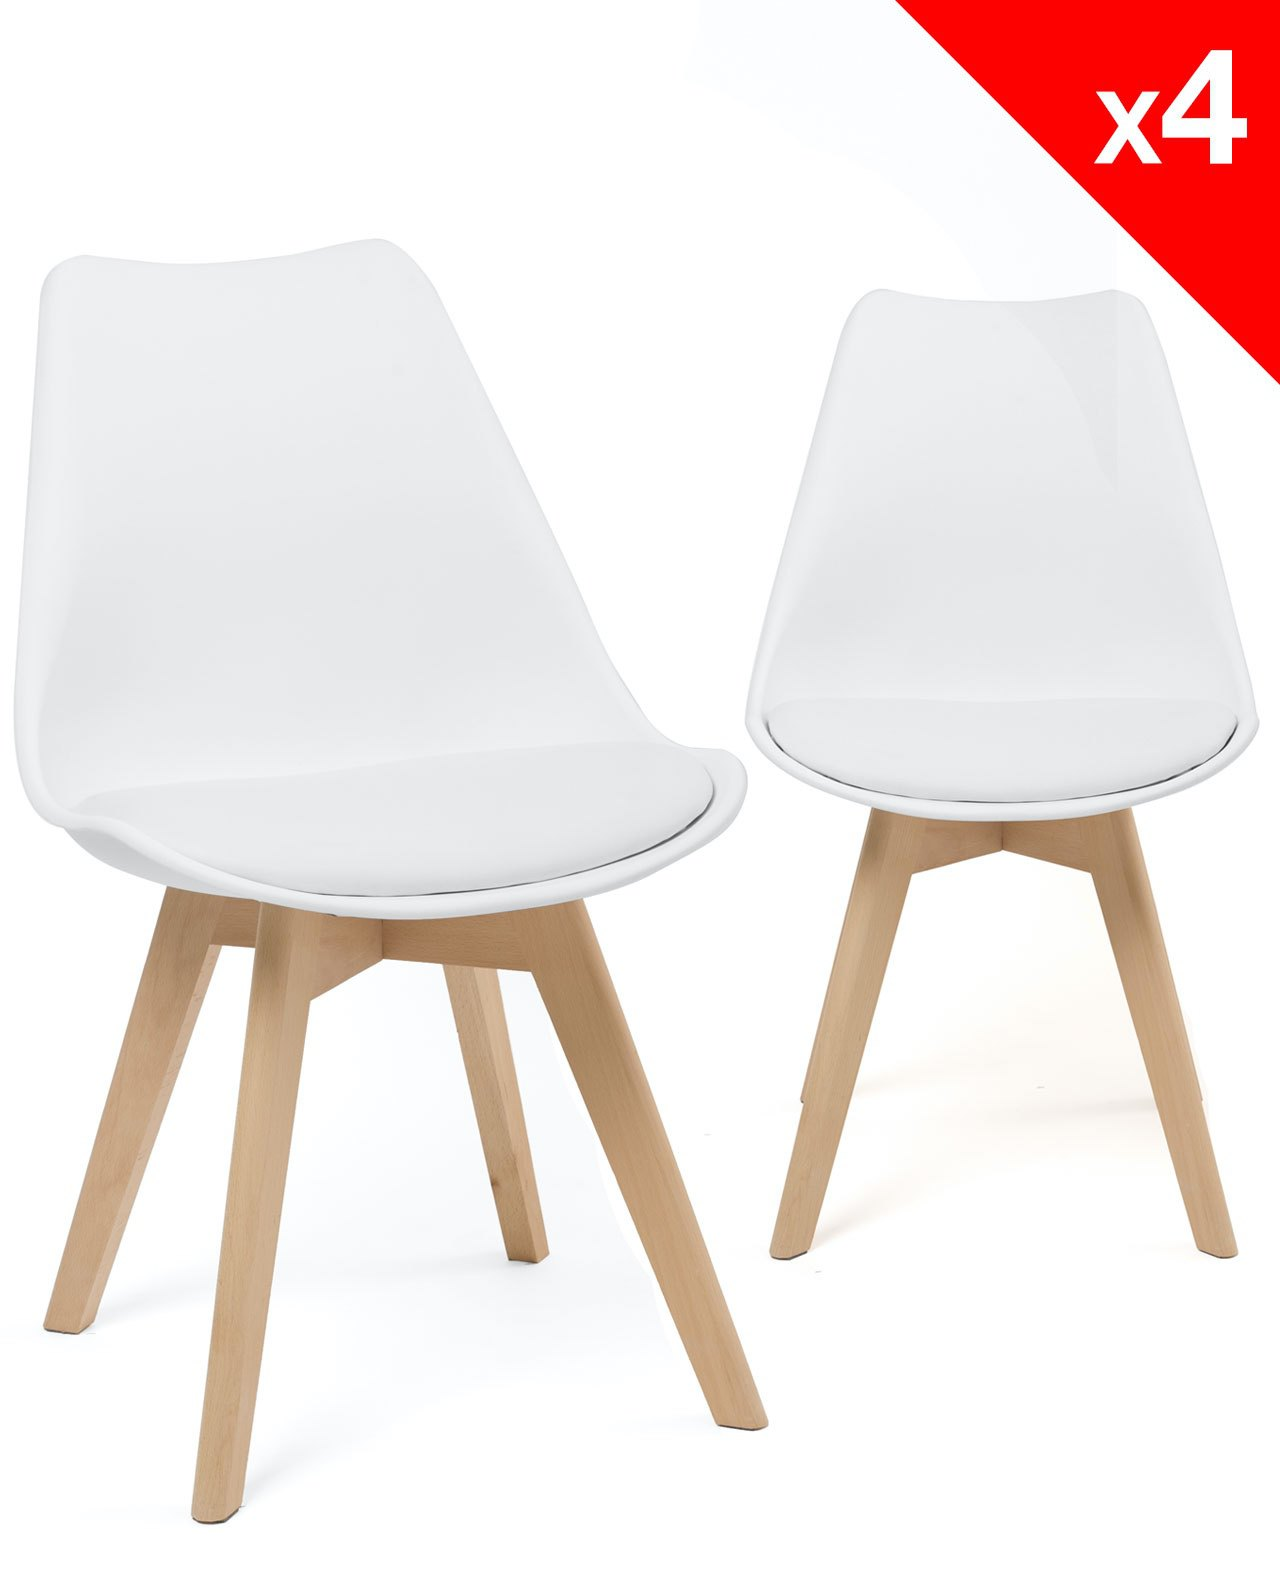 Lot Chaise Scandinave Lao Lot De 4 Chaises Scandinave Rembourrées